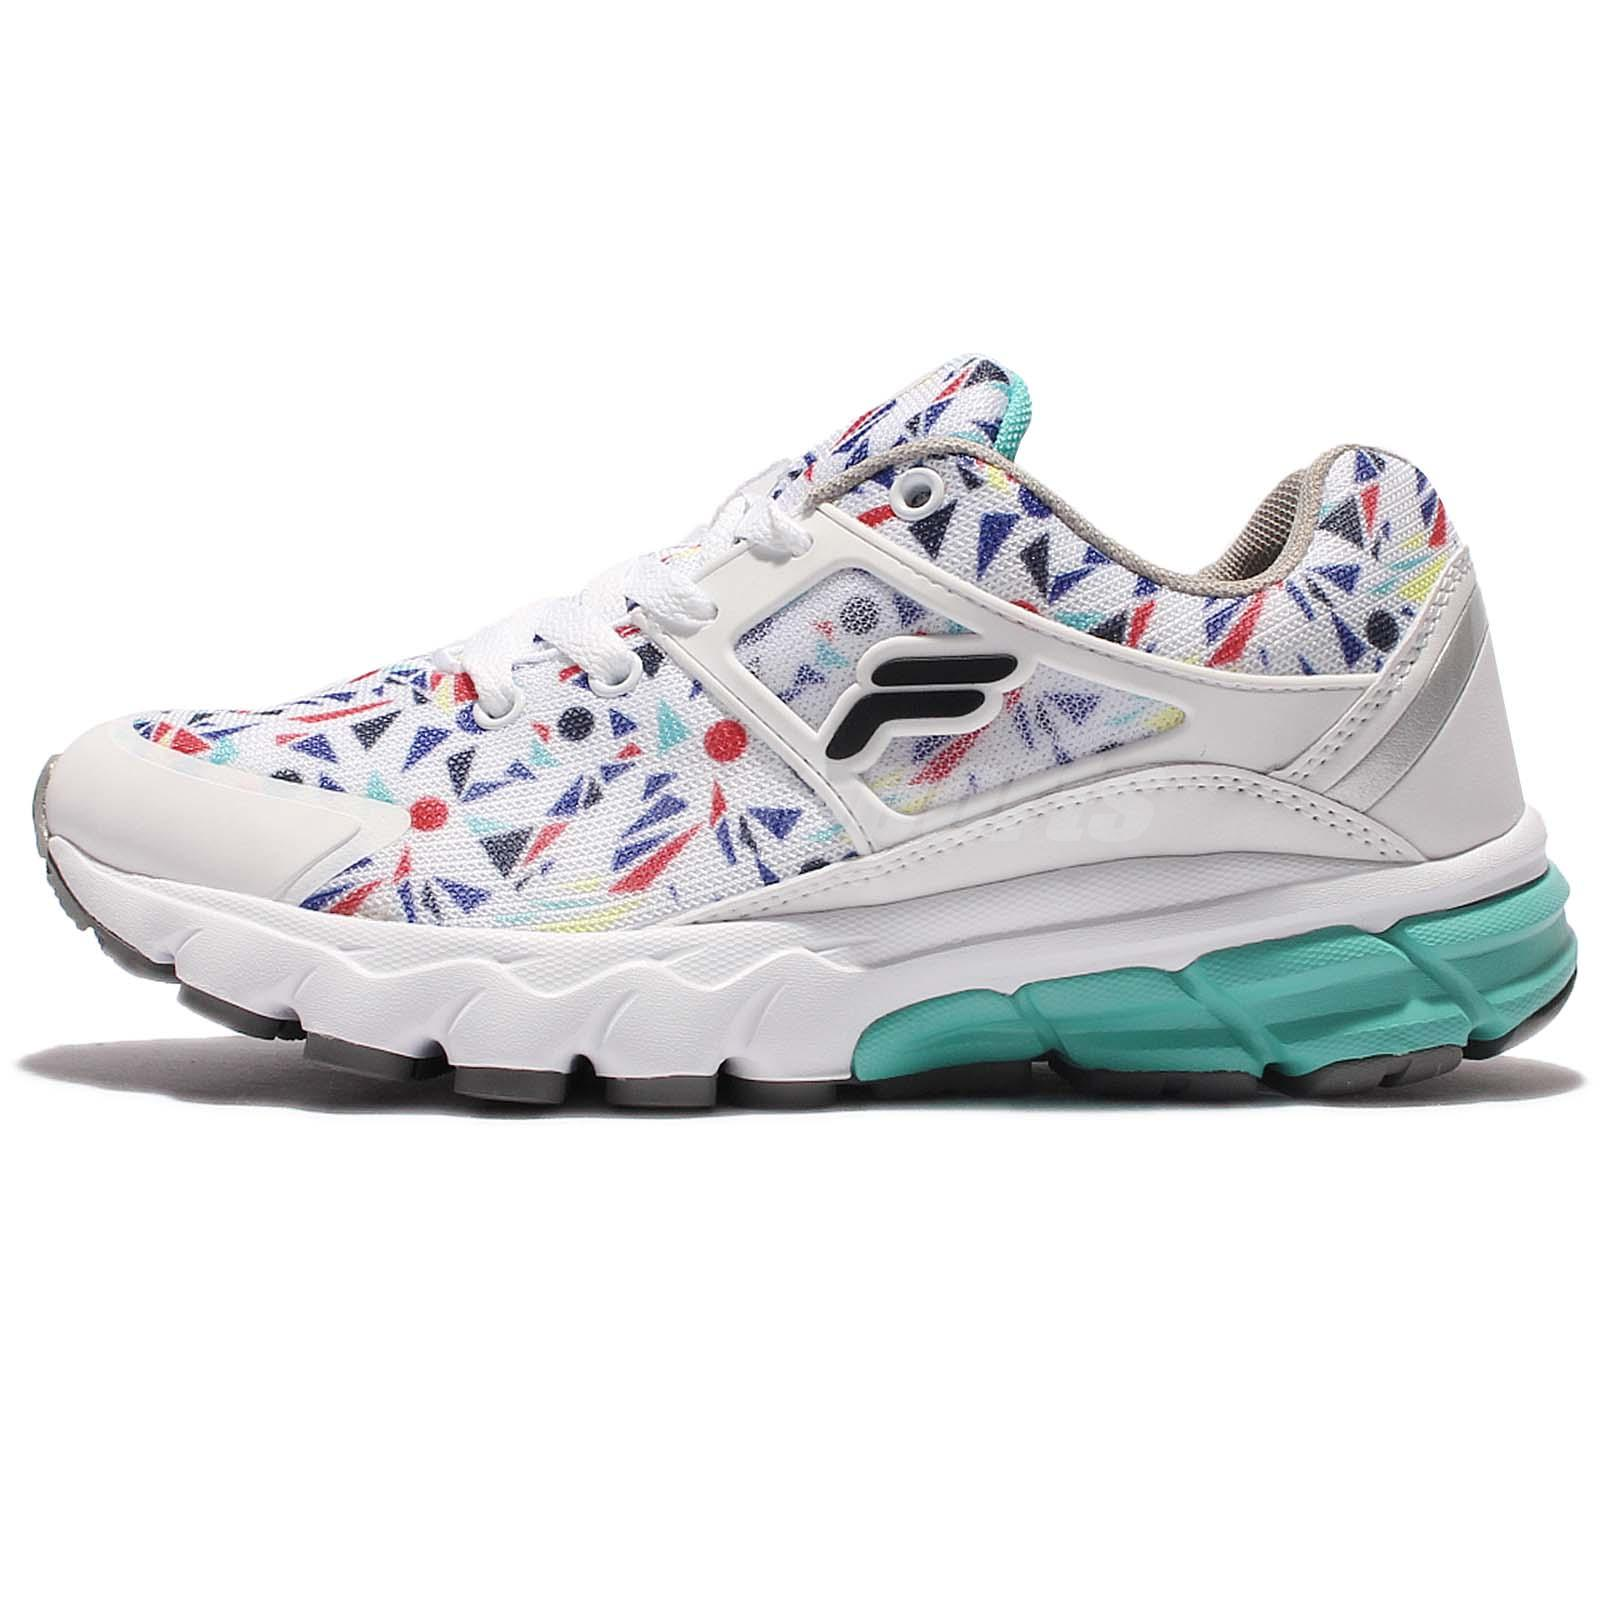 1db83494cd1 Details about FILA J314R White Green Multi-Color Women Running Shoes  Sneakers 5-J314R-130